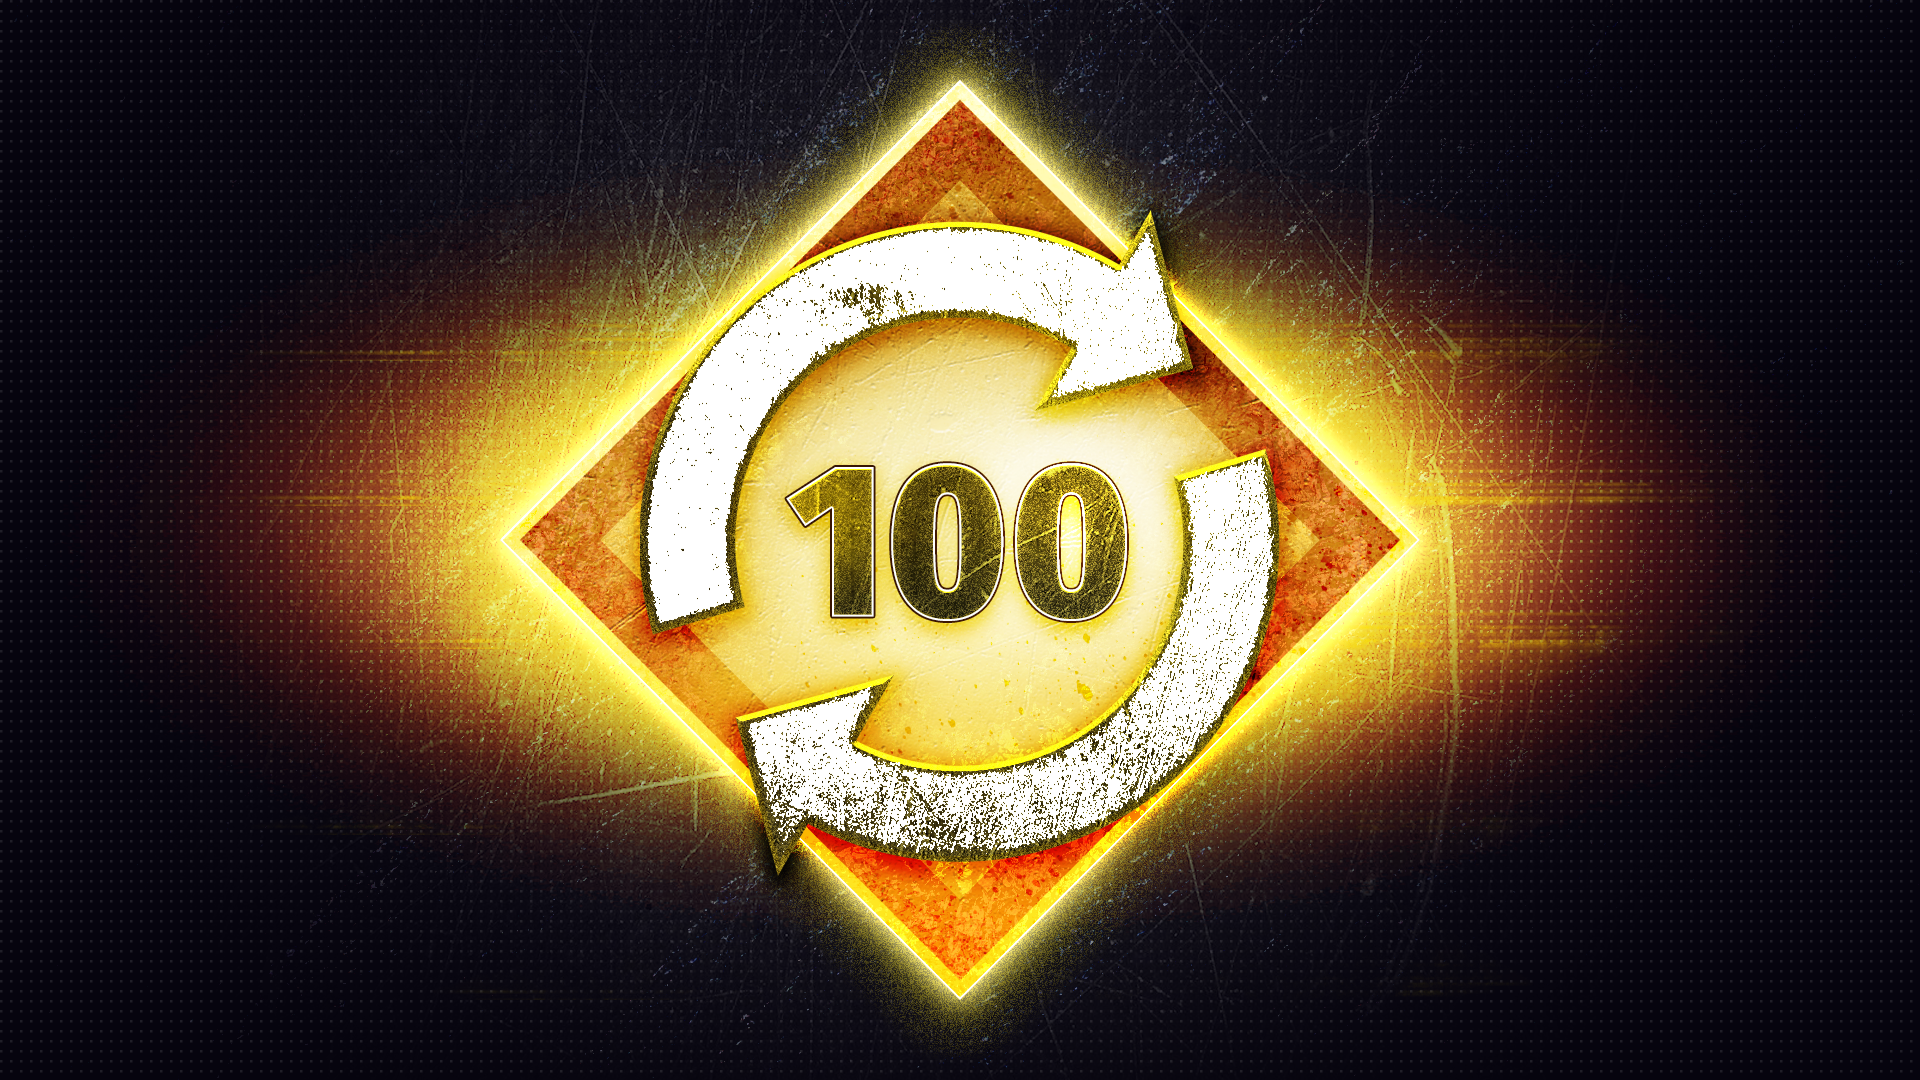 Icon for Unstoppable Force